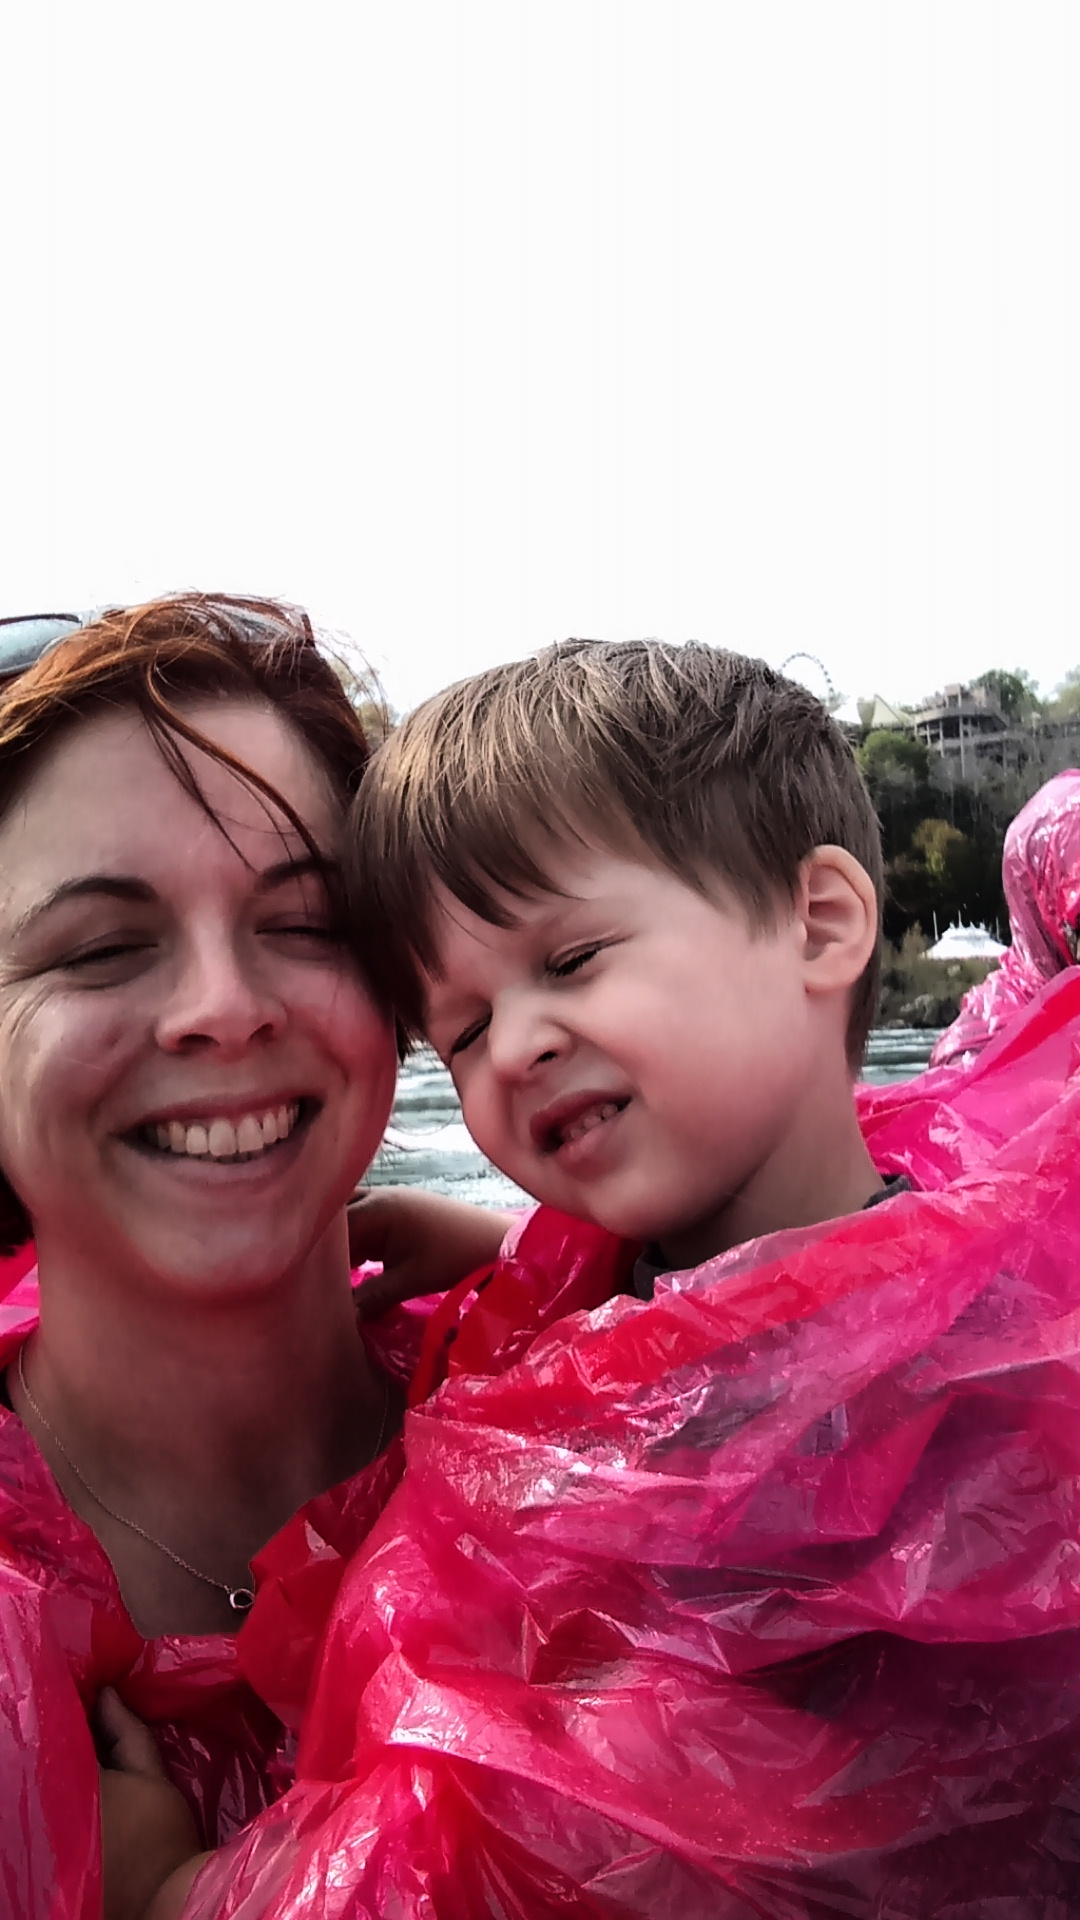 He did not like the waterfall parts of the boat ride.